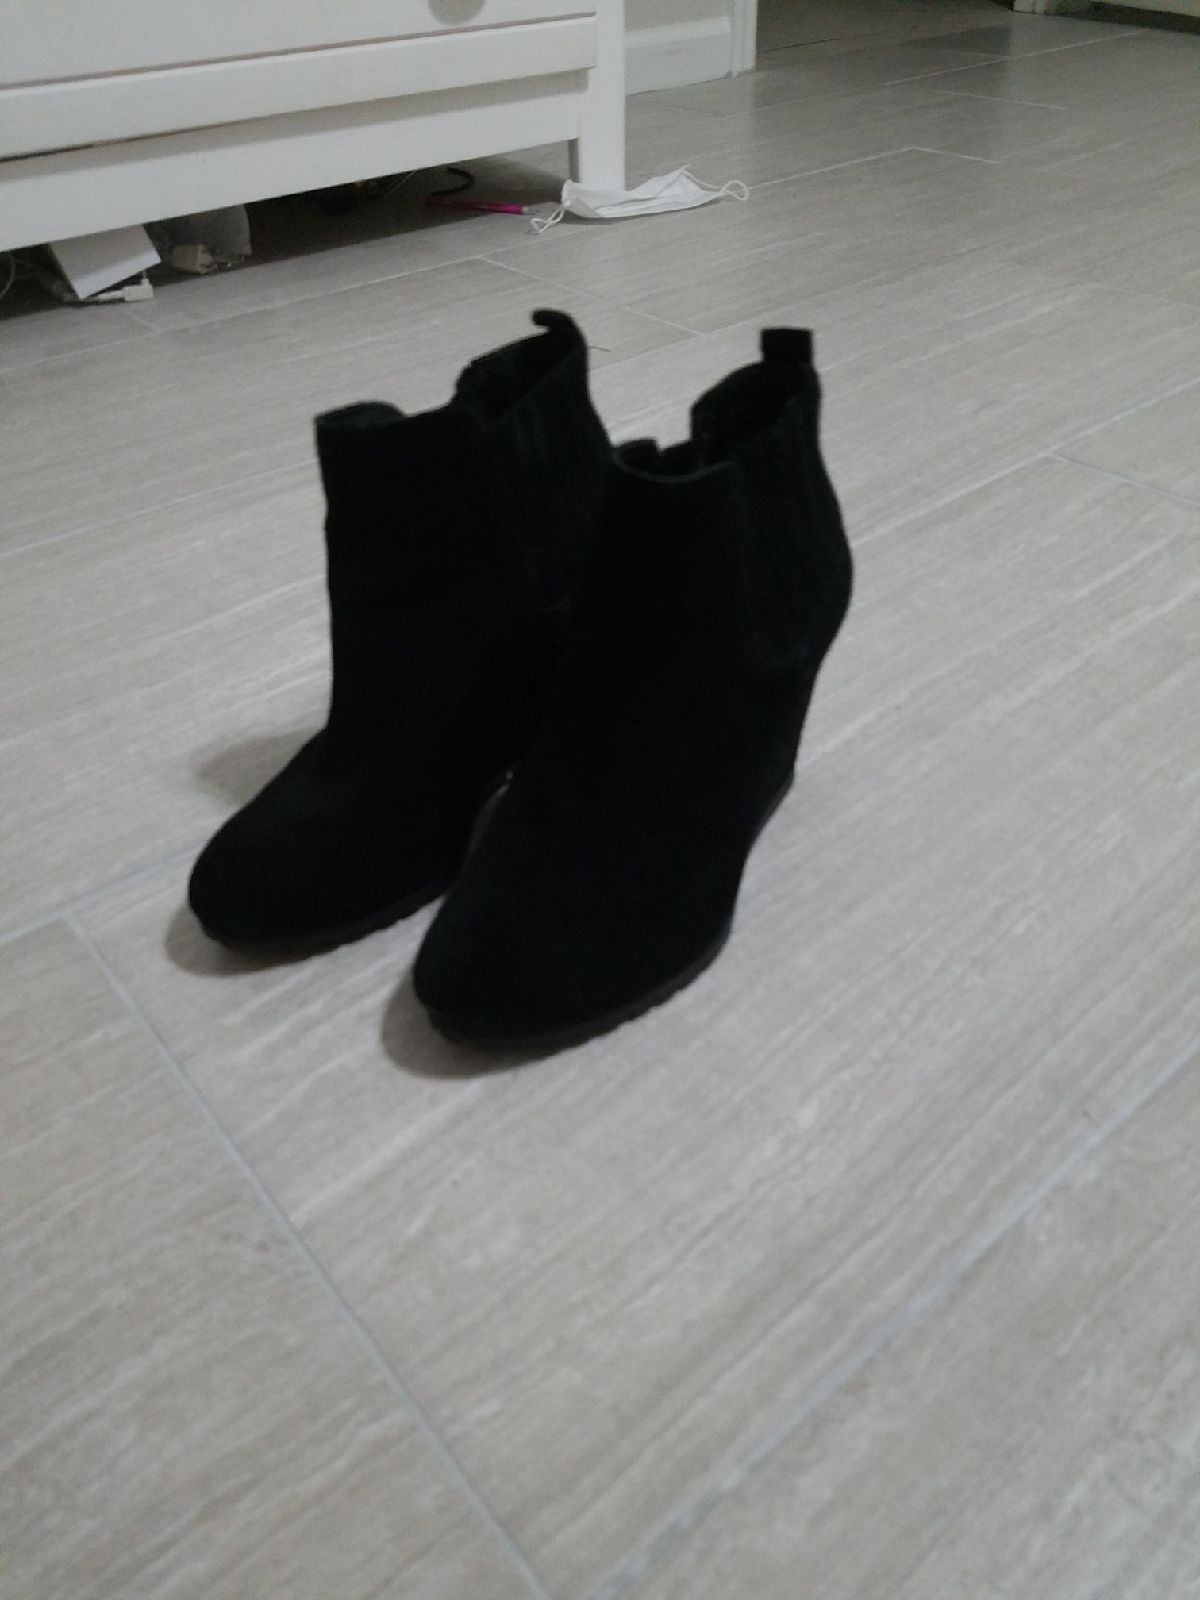 4 inch high heel boots size 6